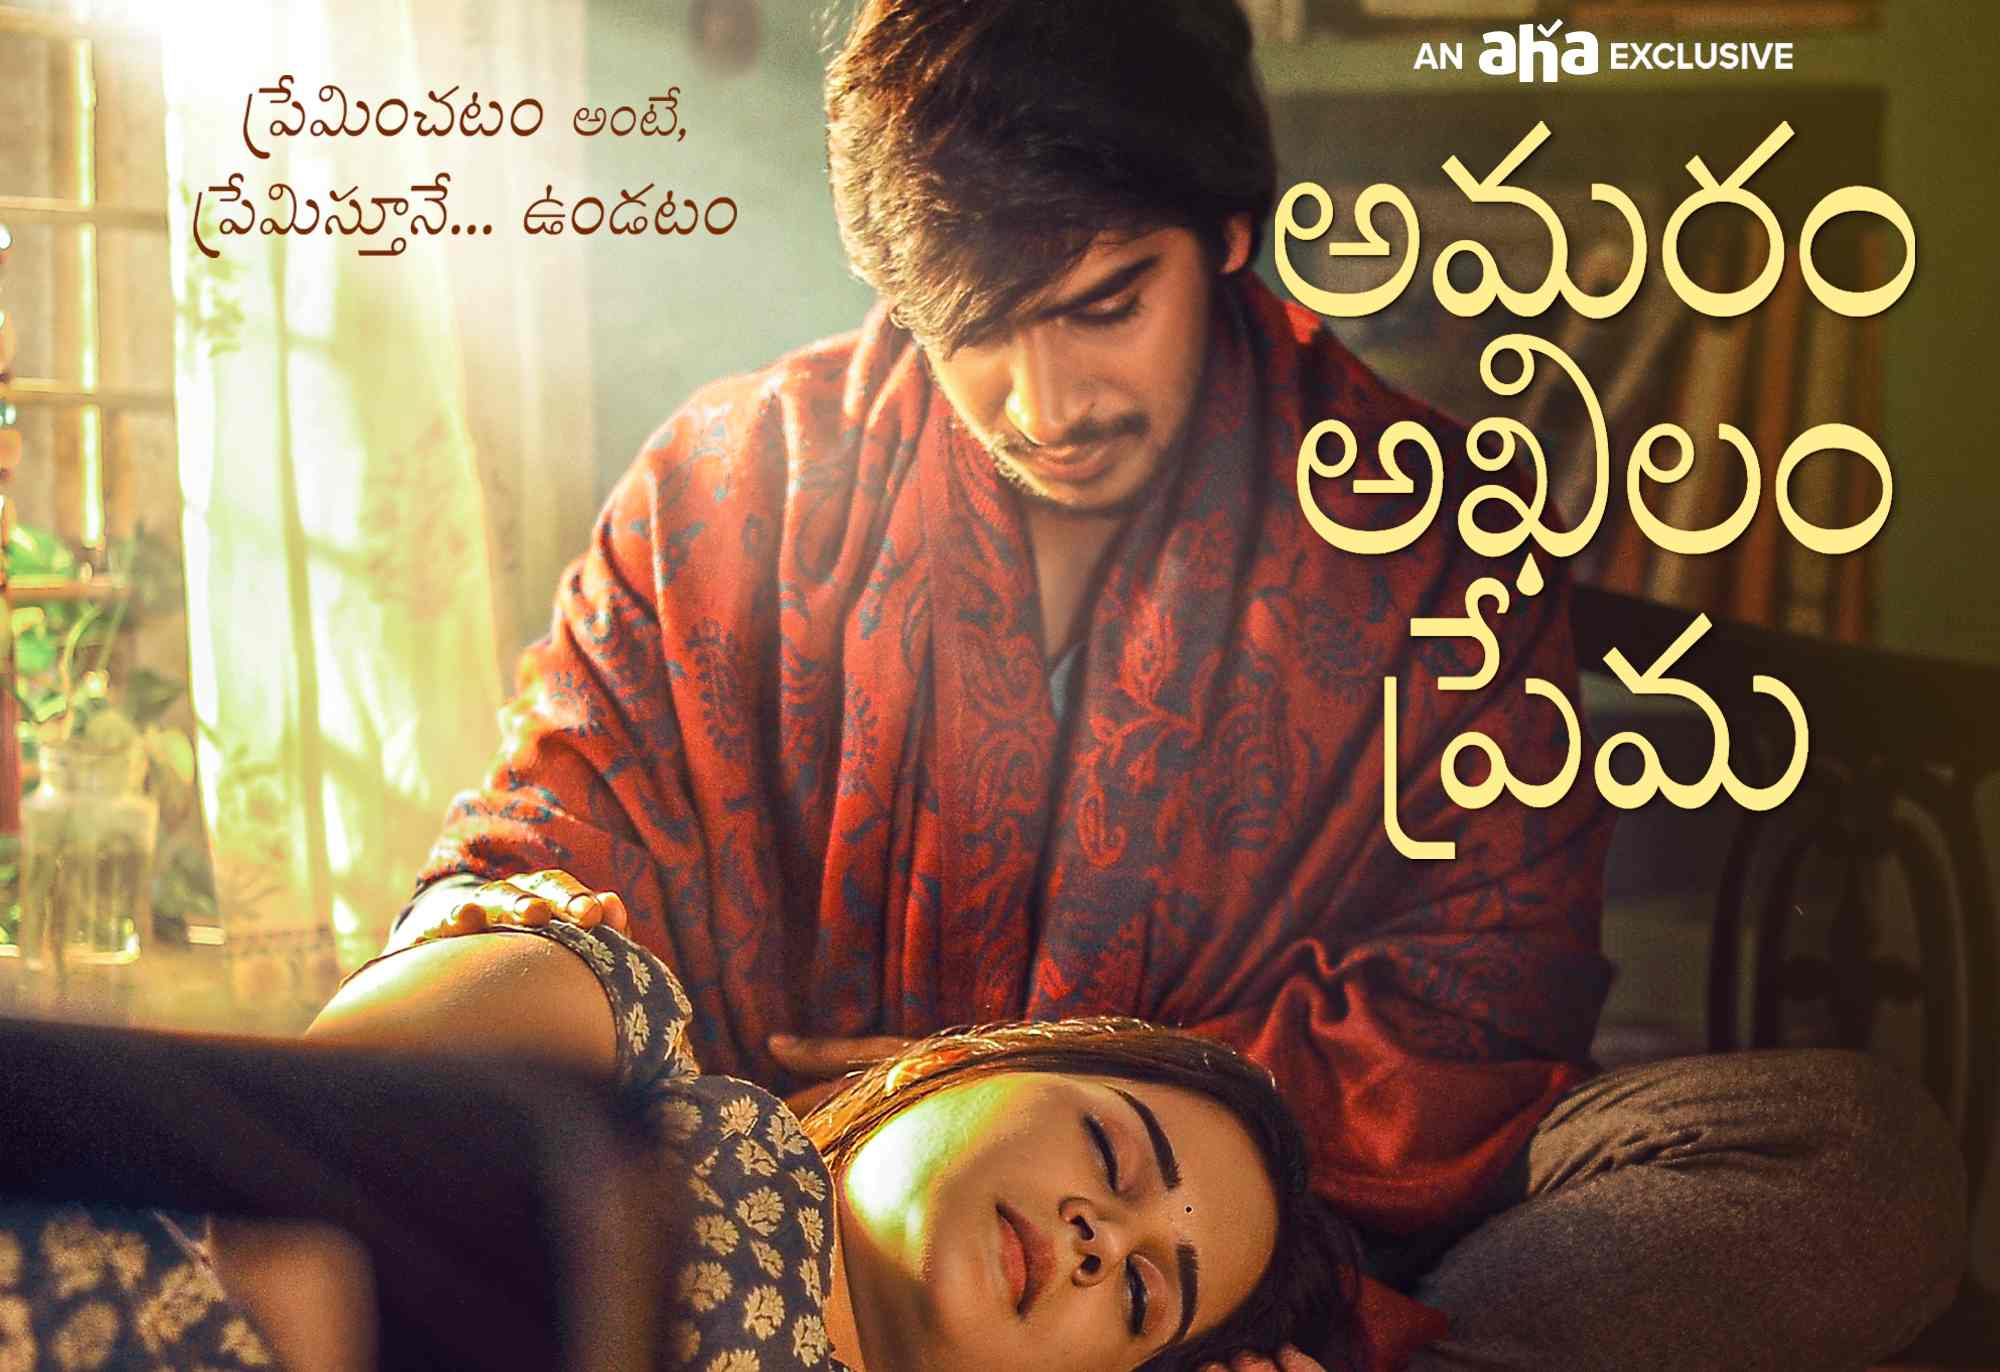 *Producer Allu Arvind launches the poster of Amaram Akhilam Prema that releases September 18 on aha*